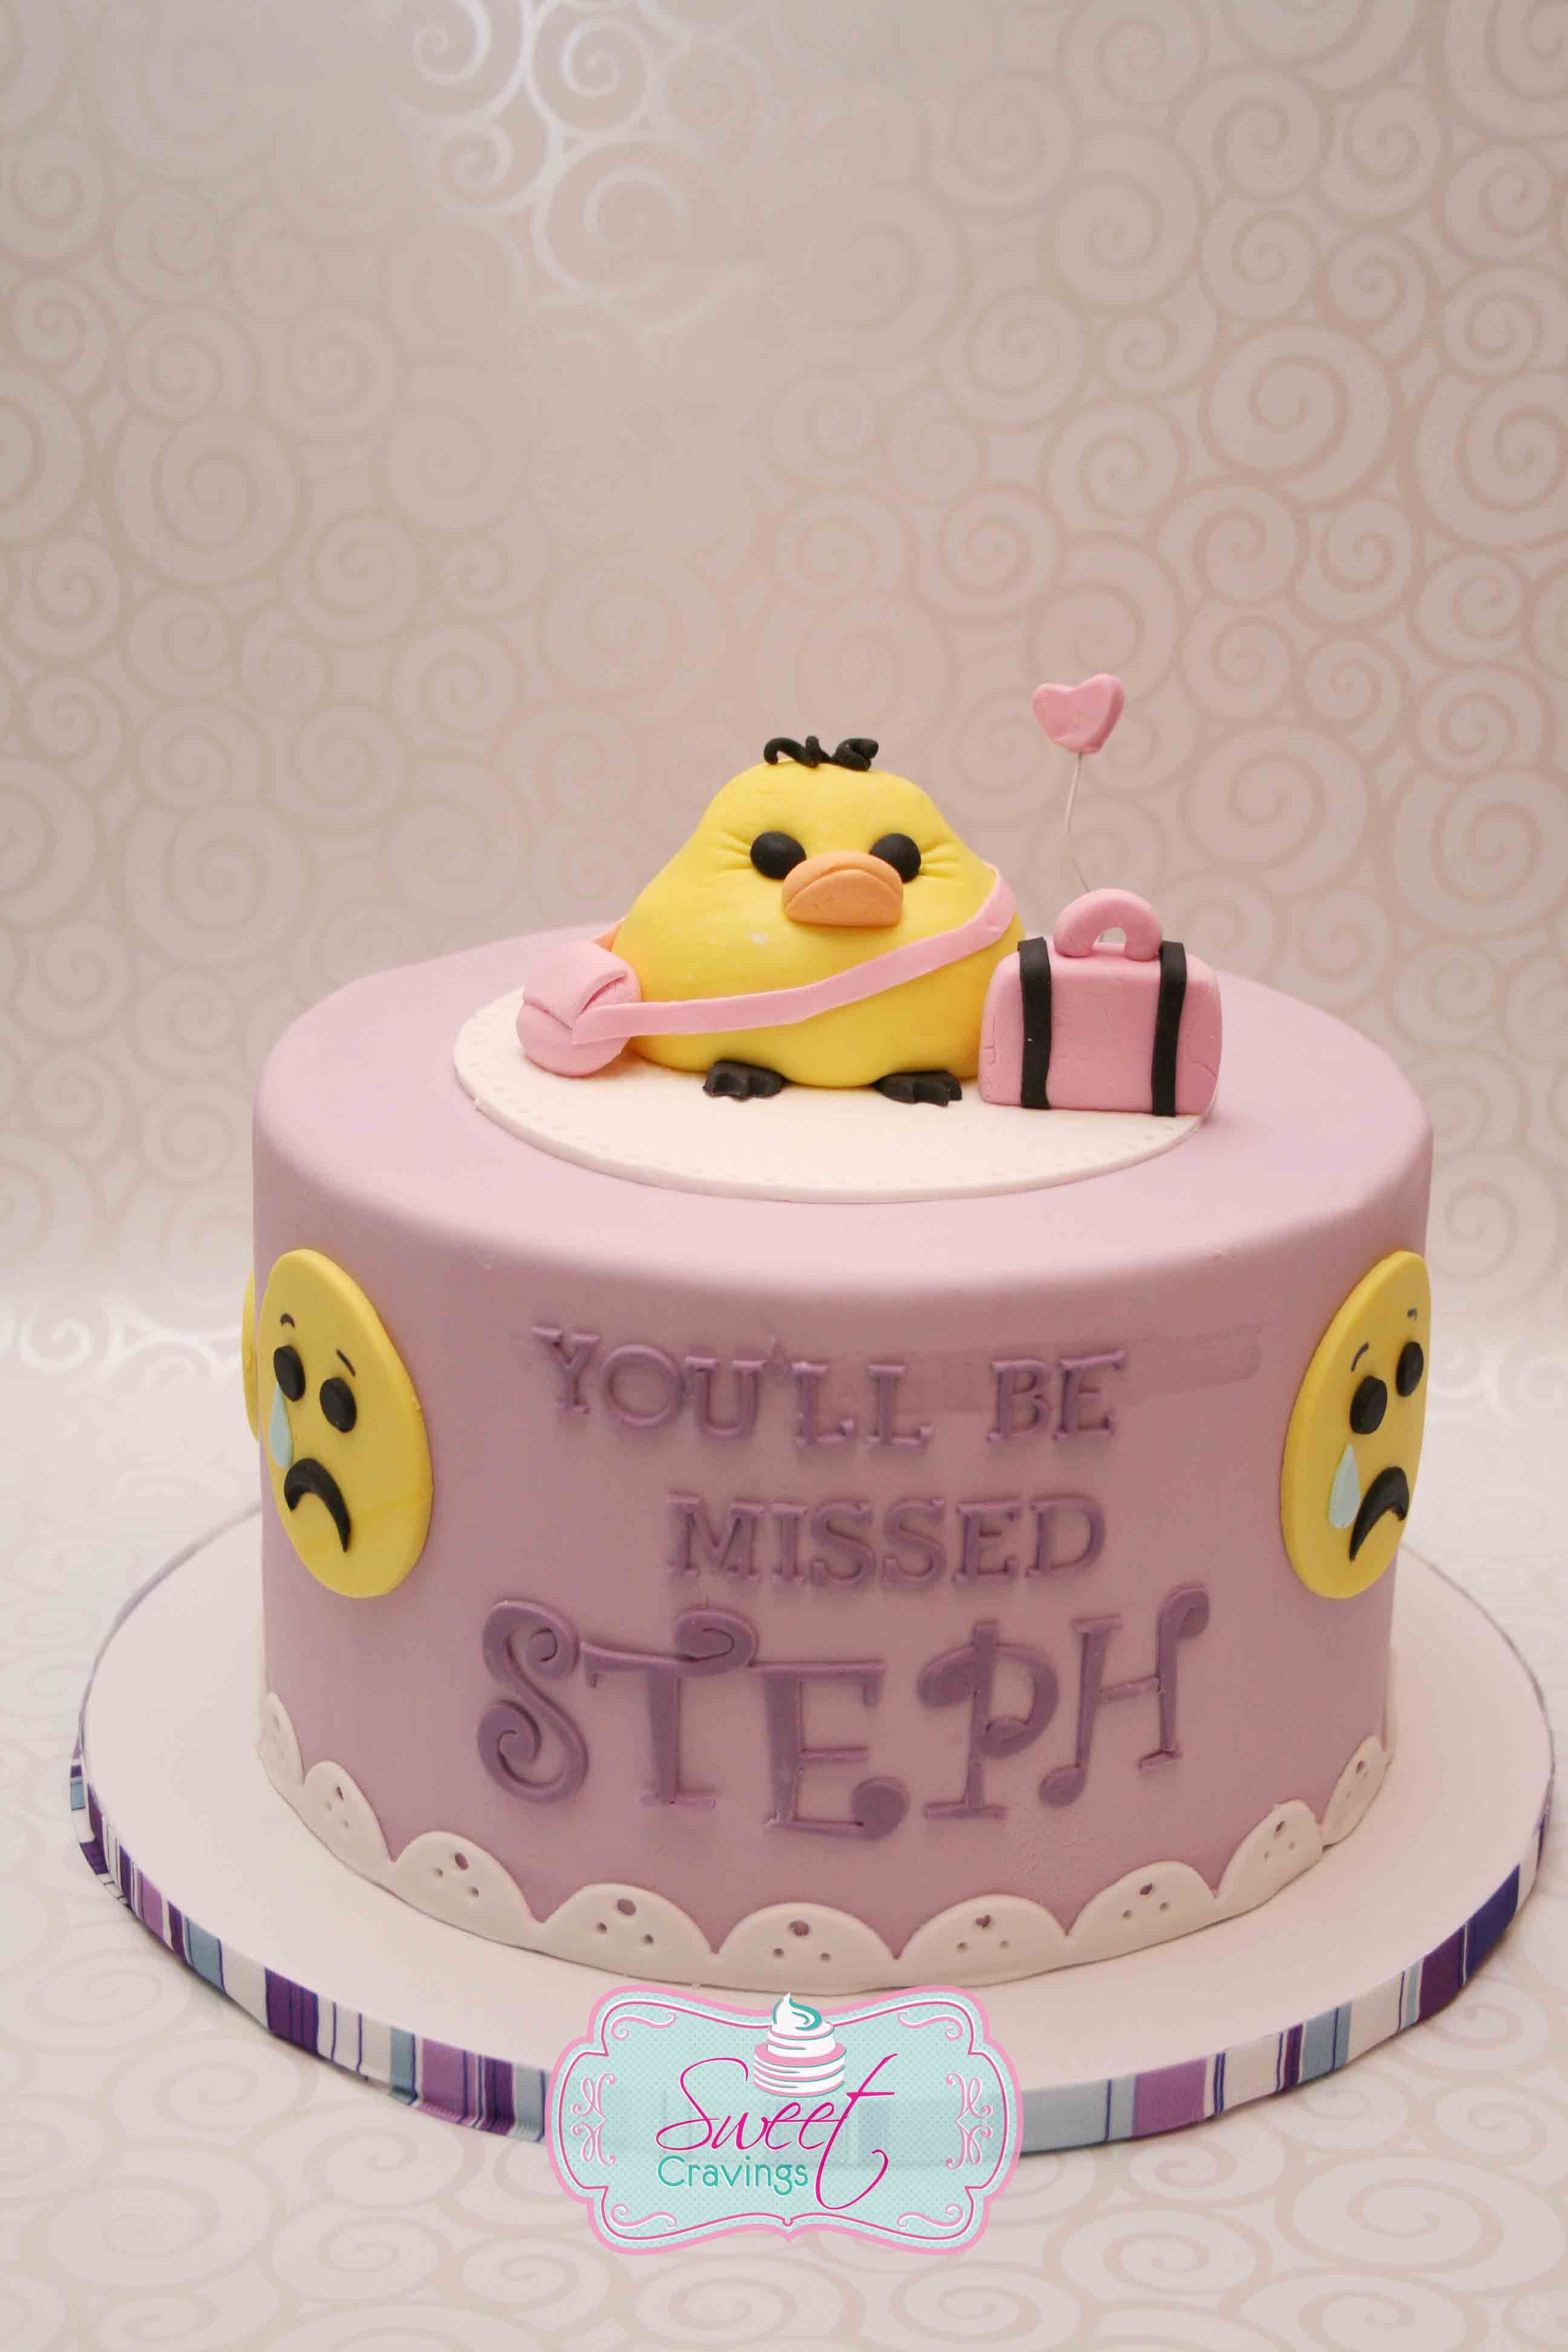 Outstanding Going Away Cake With Emoticons Facebook Com Personalised Birthday Cards Vishlily Jamesorg